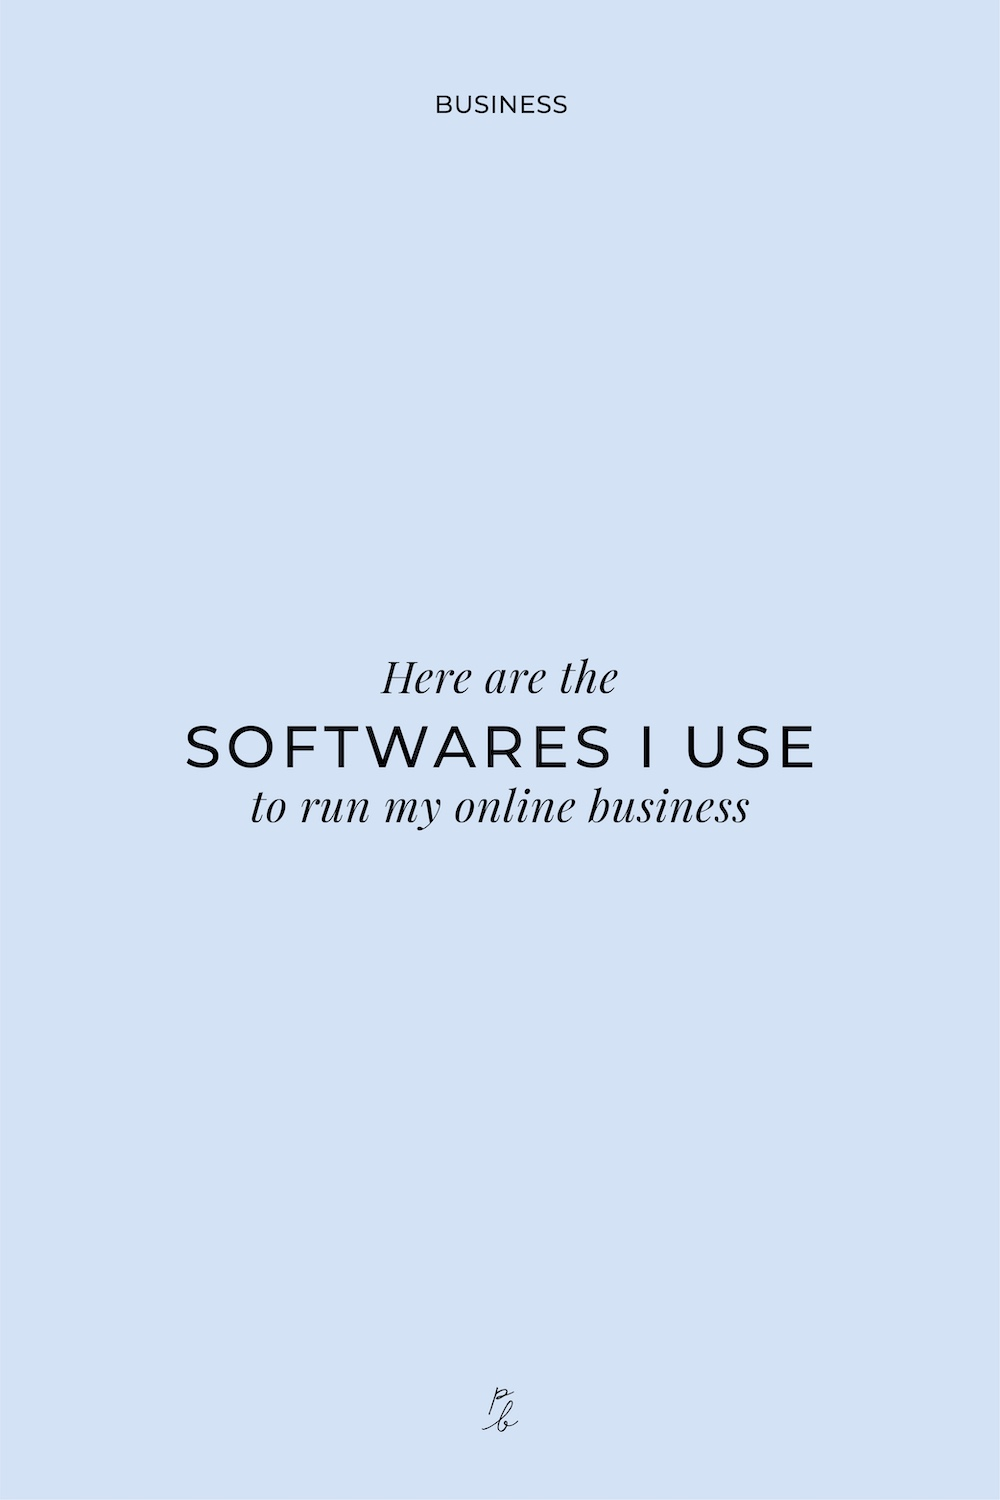 4-Here are the softwares I use to run my online business.jpg